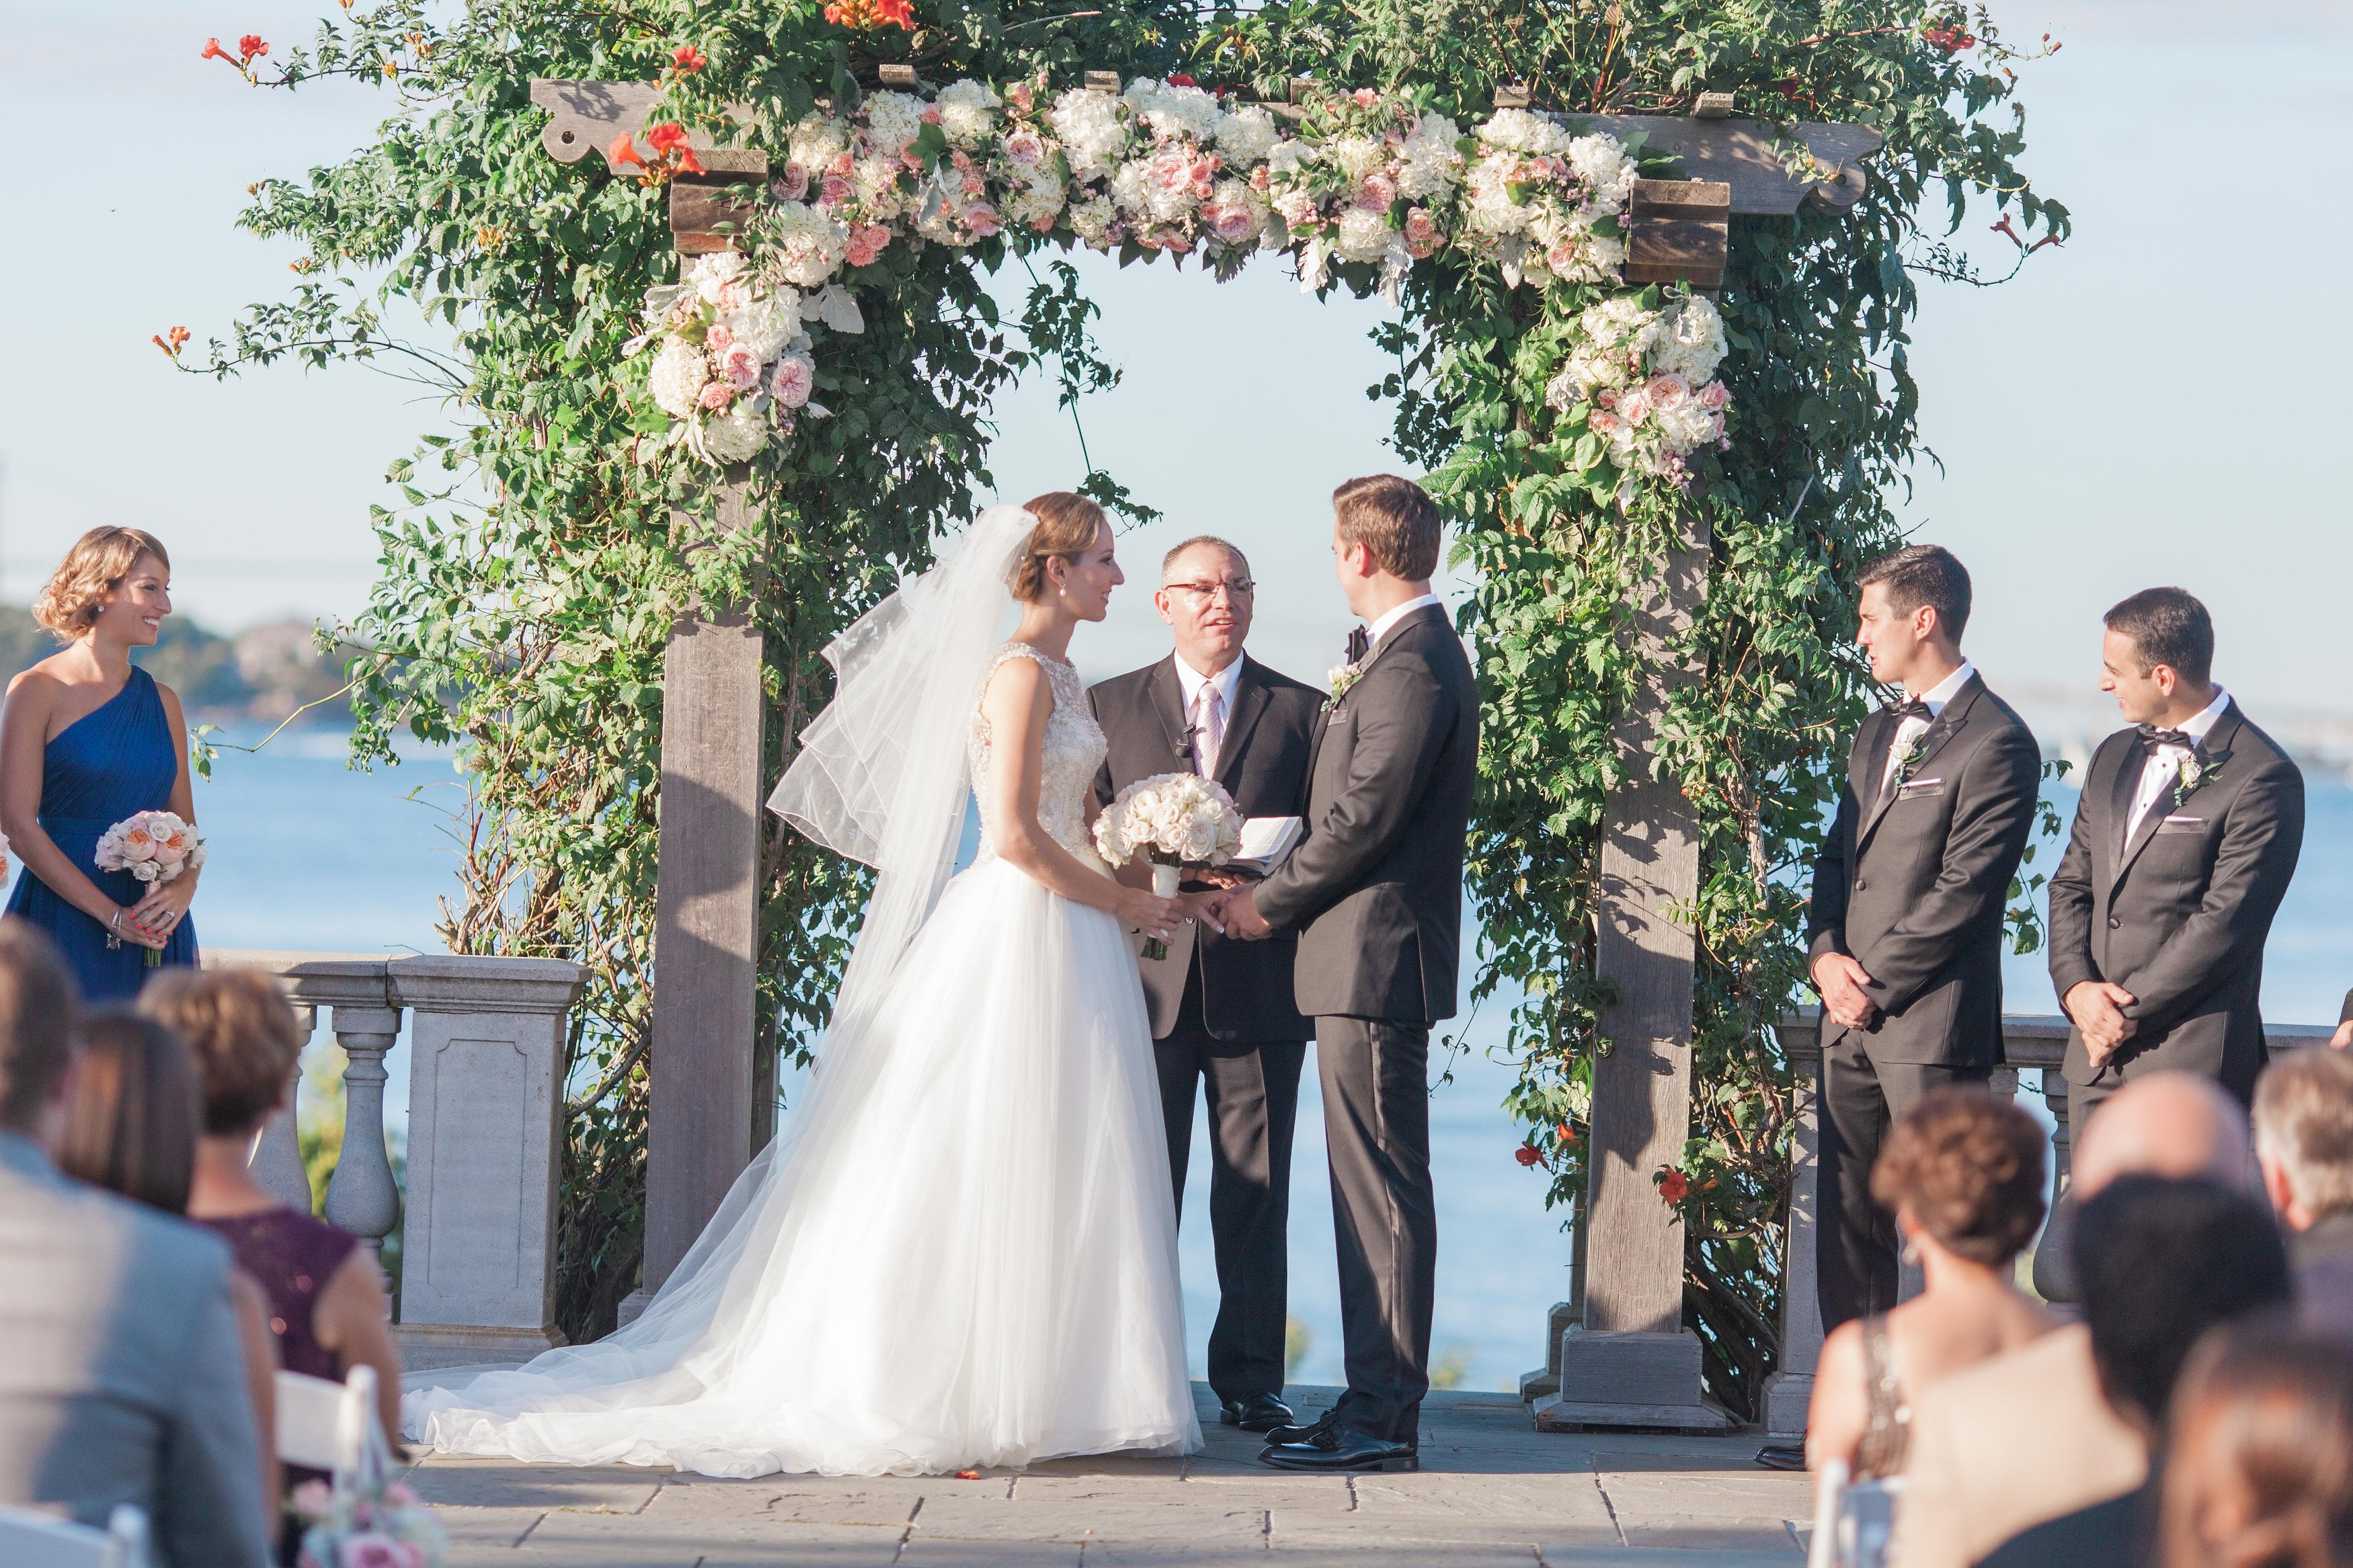 Kelley S Wedding Dress Preservation In Connecticut Wedding Gown Specialists